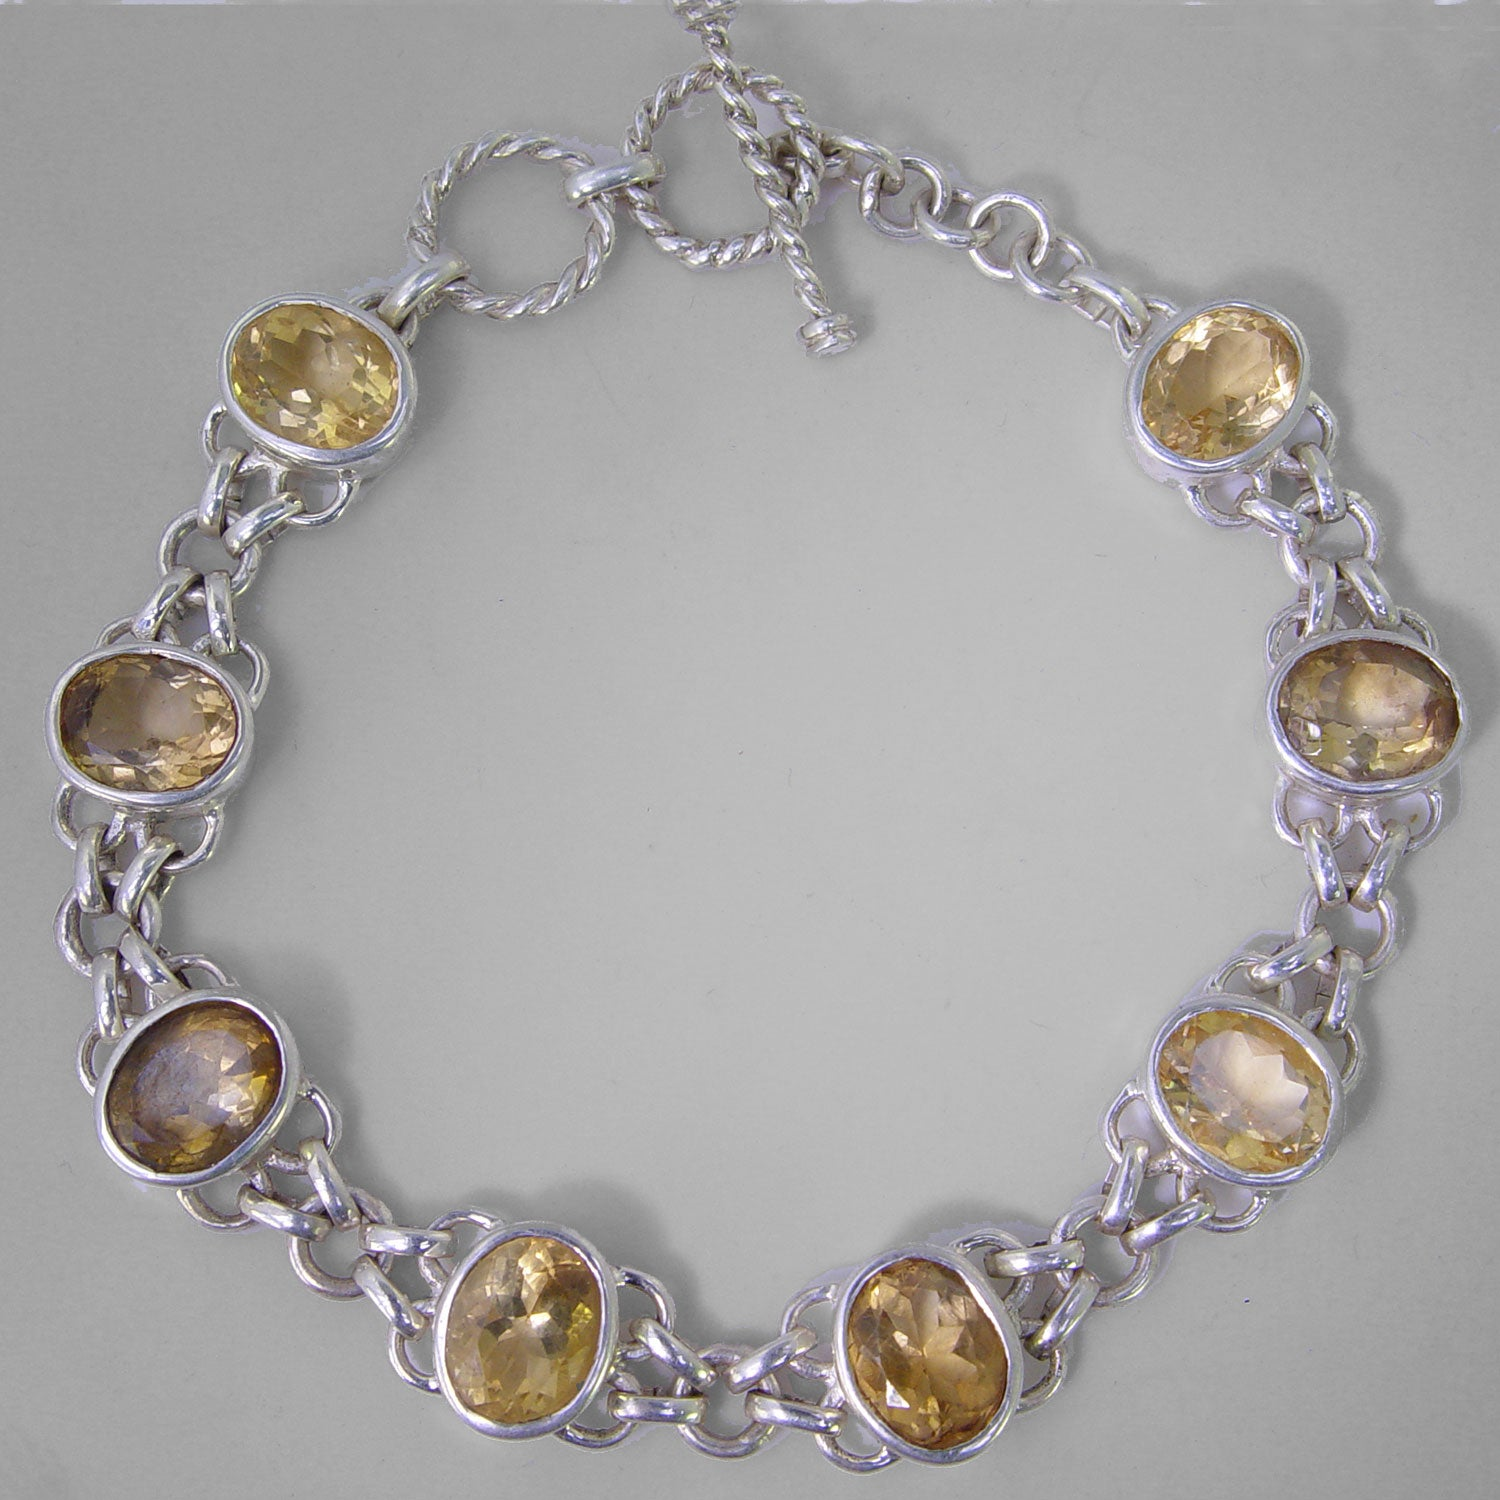 Citrine 8 Faceted Ovals Bezel Set Sterling Silver Link Bracelet - 20 CTW